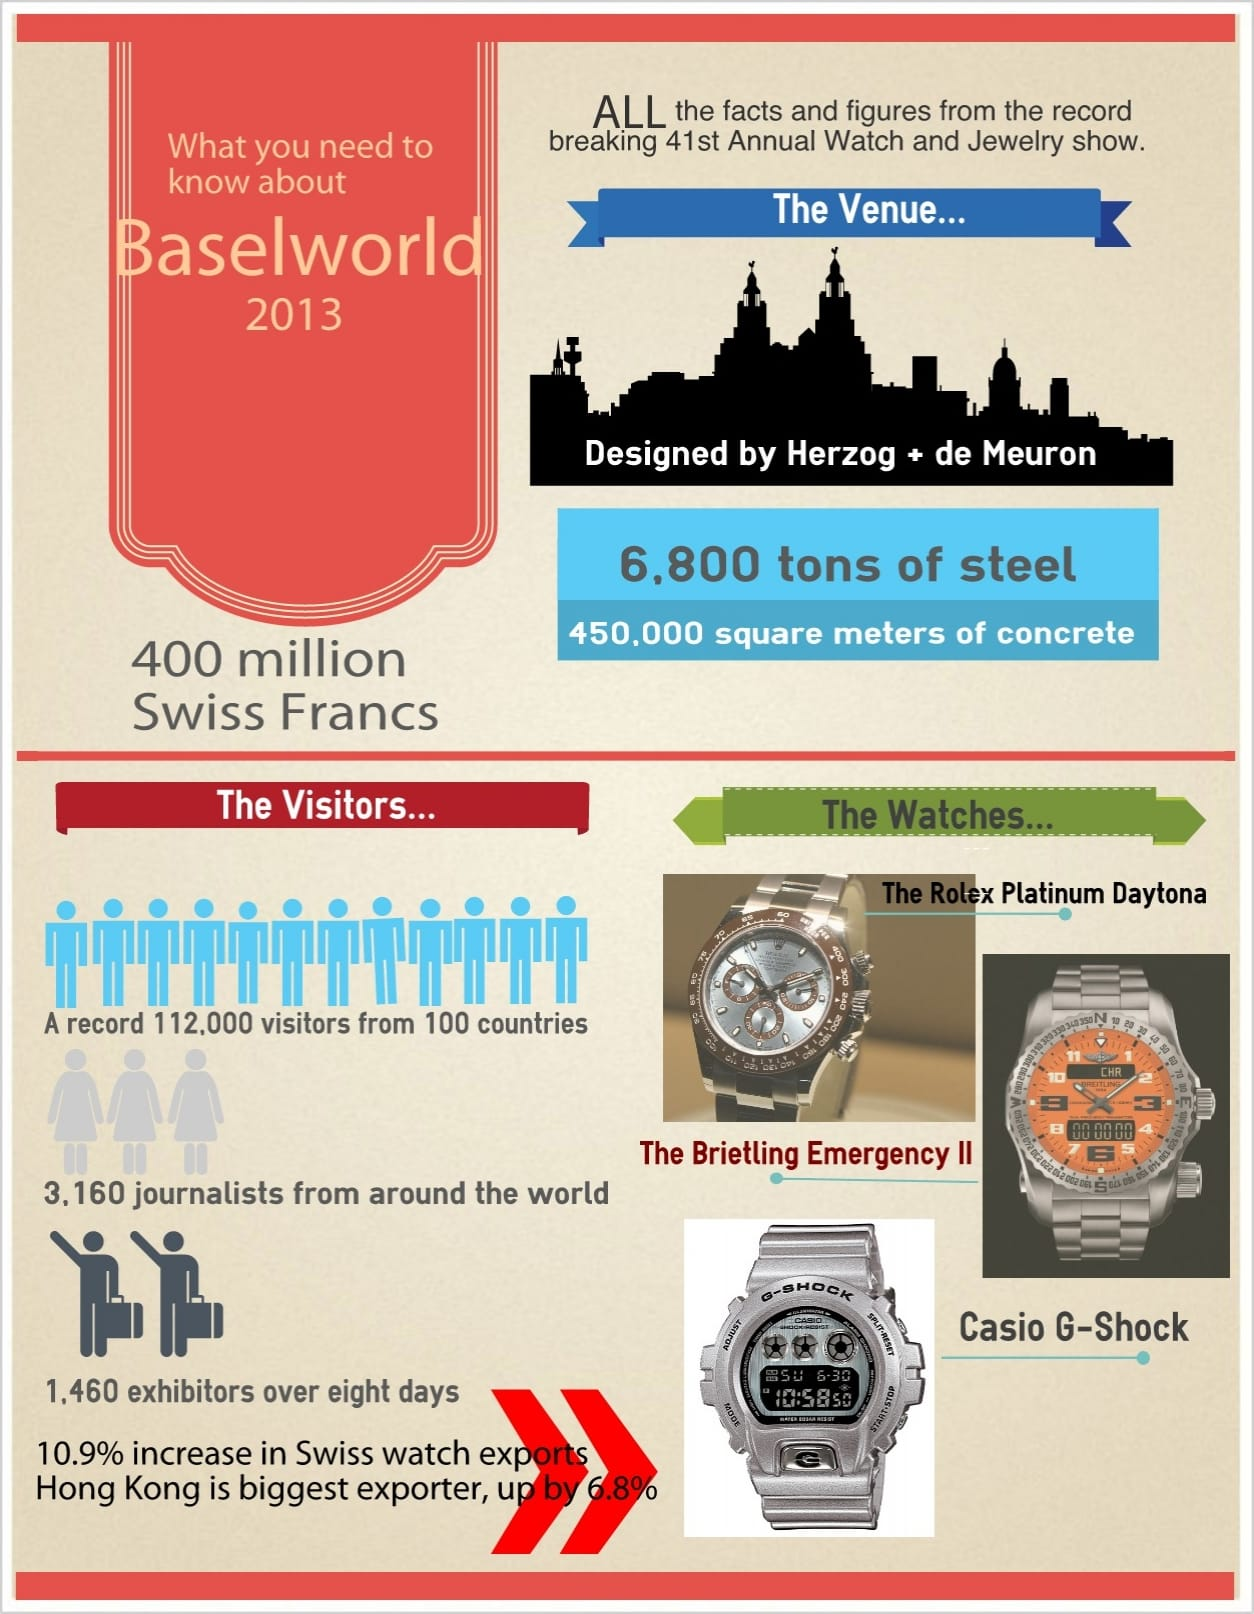 An infographic of Baselworld